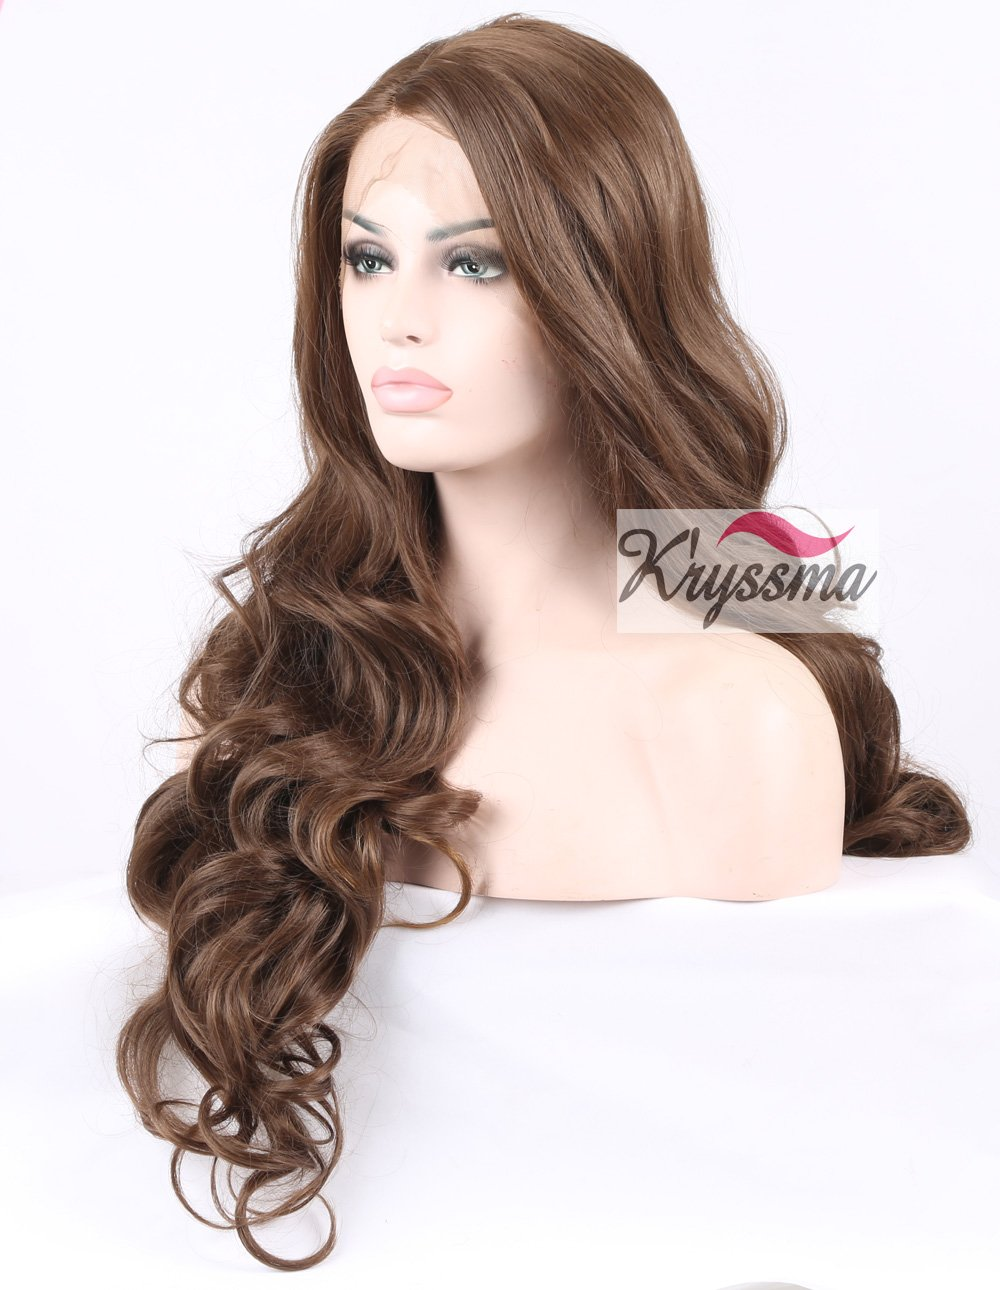 K'ryssma Natural Looking Brown Lace Front Wig Glueless Synthetic Long Wavy Hair Wigs for Fashion Women Heat Friendly Side Parting 24 Inch Wonder Hair